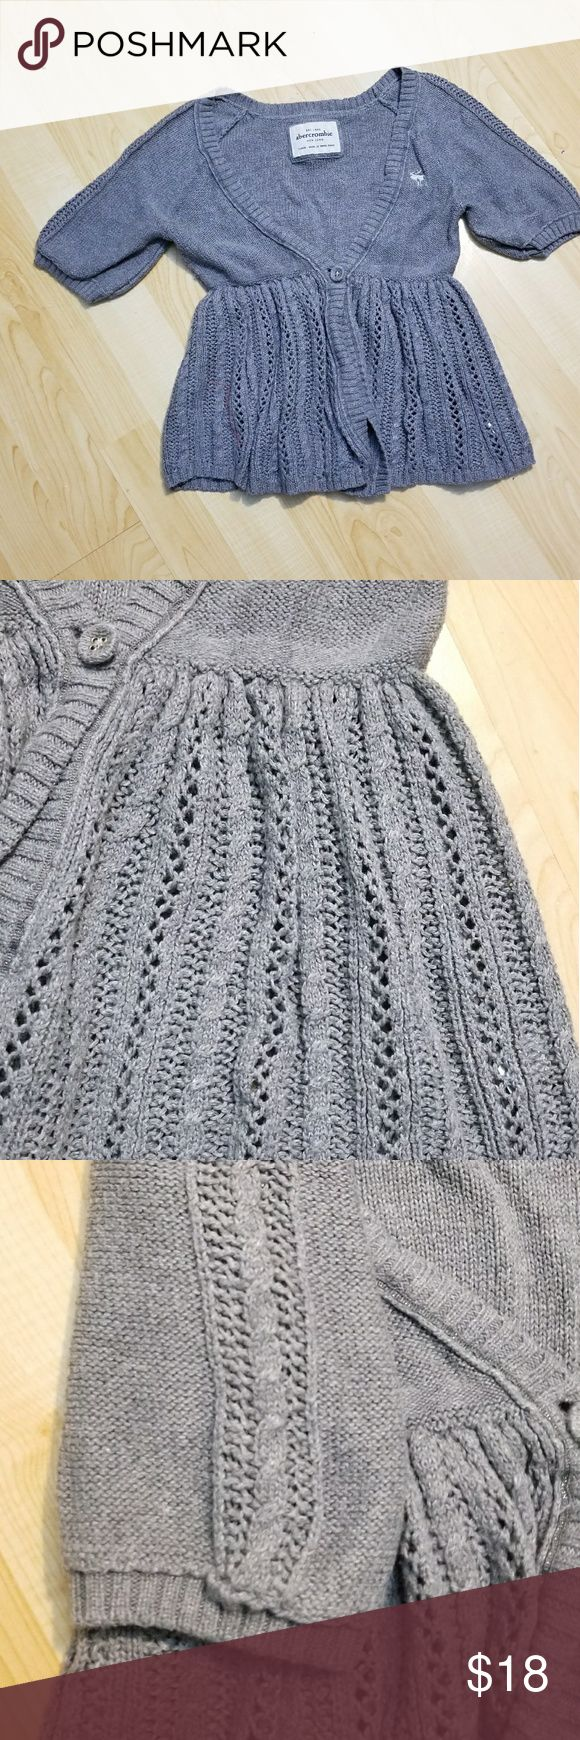 Abercrombie Girls Babydoll Sweater Grey Size L Abercrombie Fitch Sweater Button Cable Knit Short Sleeve Gray 100% Cotton Abercrombie & Fitch Shirts & Tops Sweaters